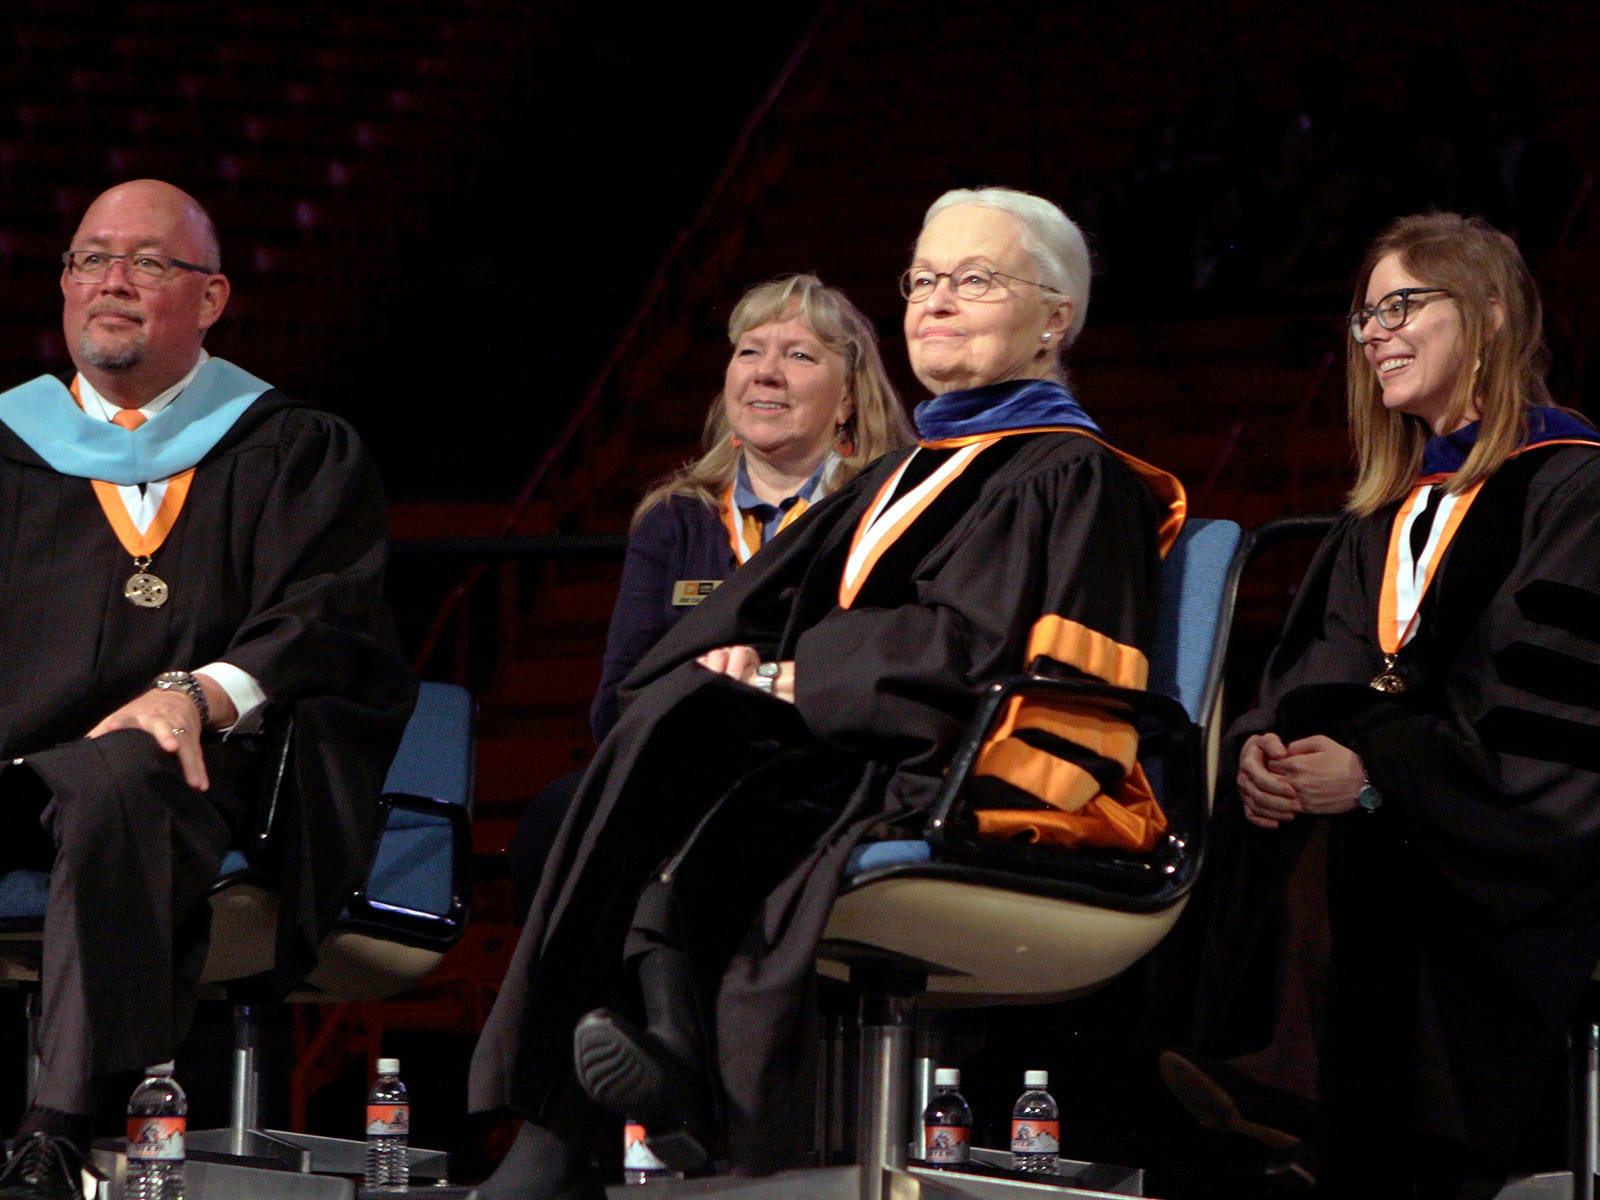 UTEP President Diana Natalciio at the school's winter commencement ceremonies in December.